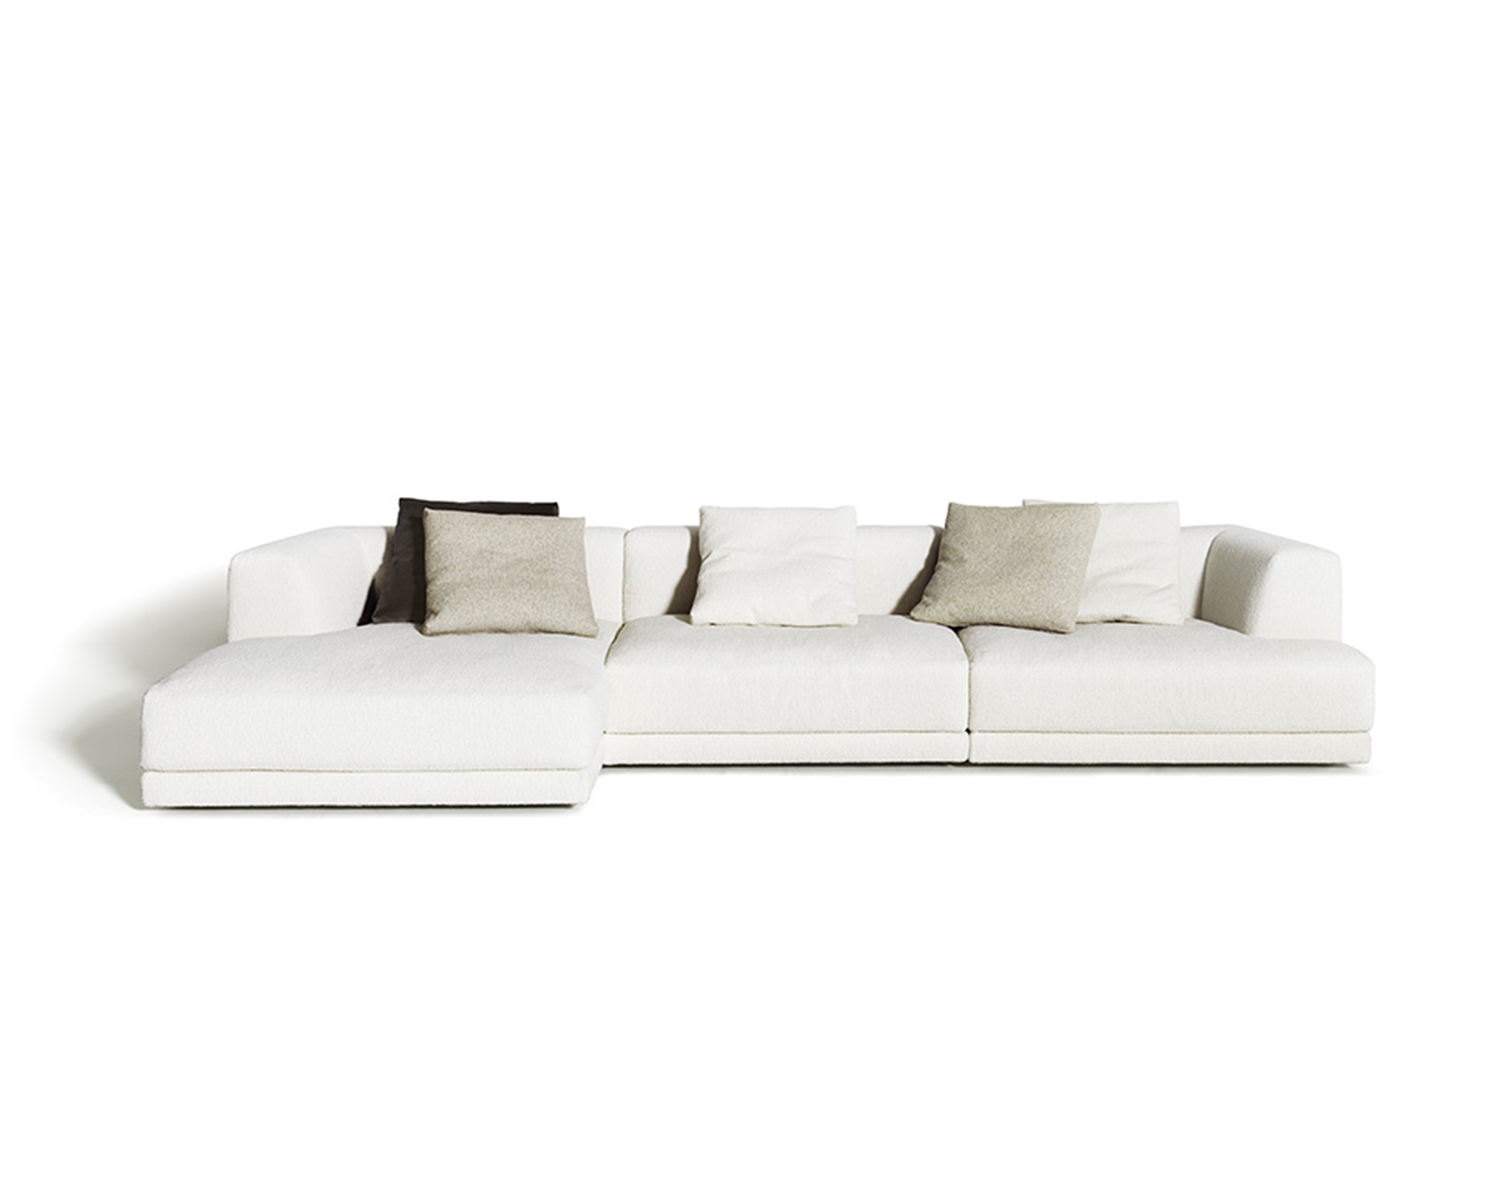 White Alberese sectional chaise with throw pillows in various neutral colours on white background